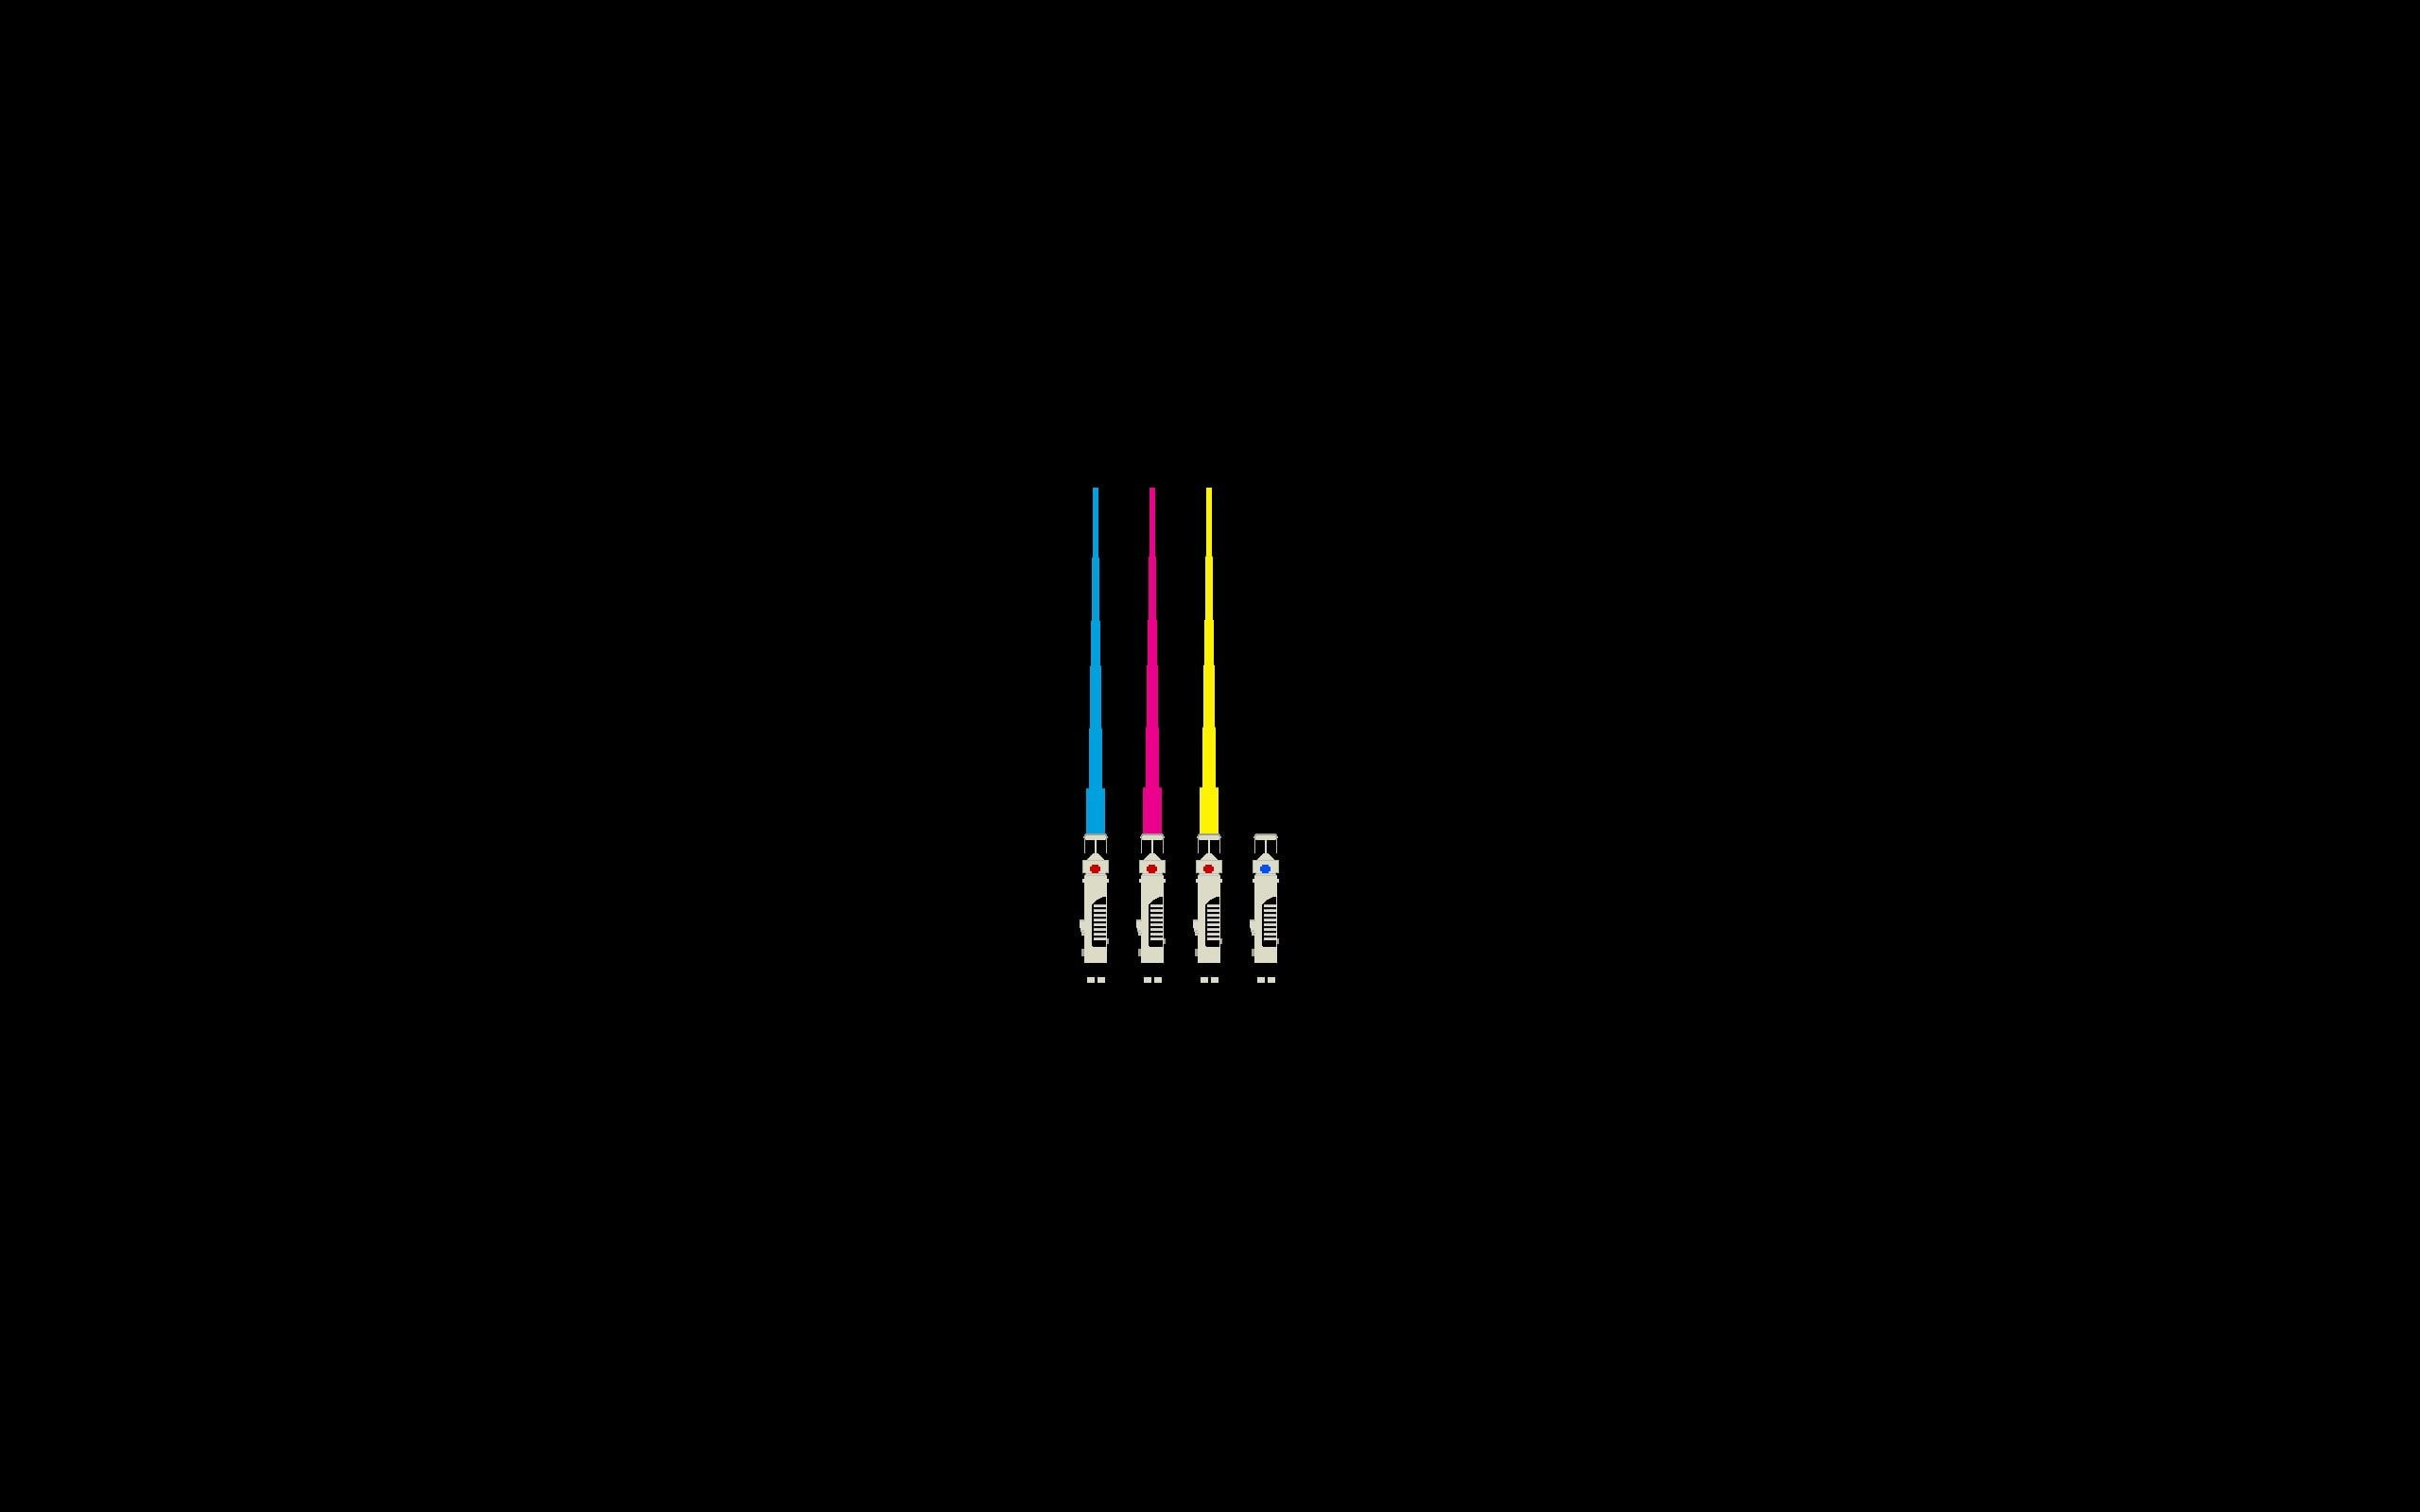 Star Wars Lightsaber Cmyk Minimalism 2k Wallpaper Hdwallpaper Desktop In 2020 Minimalist Wallpaper Disney Minimalist Lightsaber